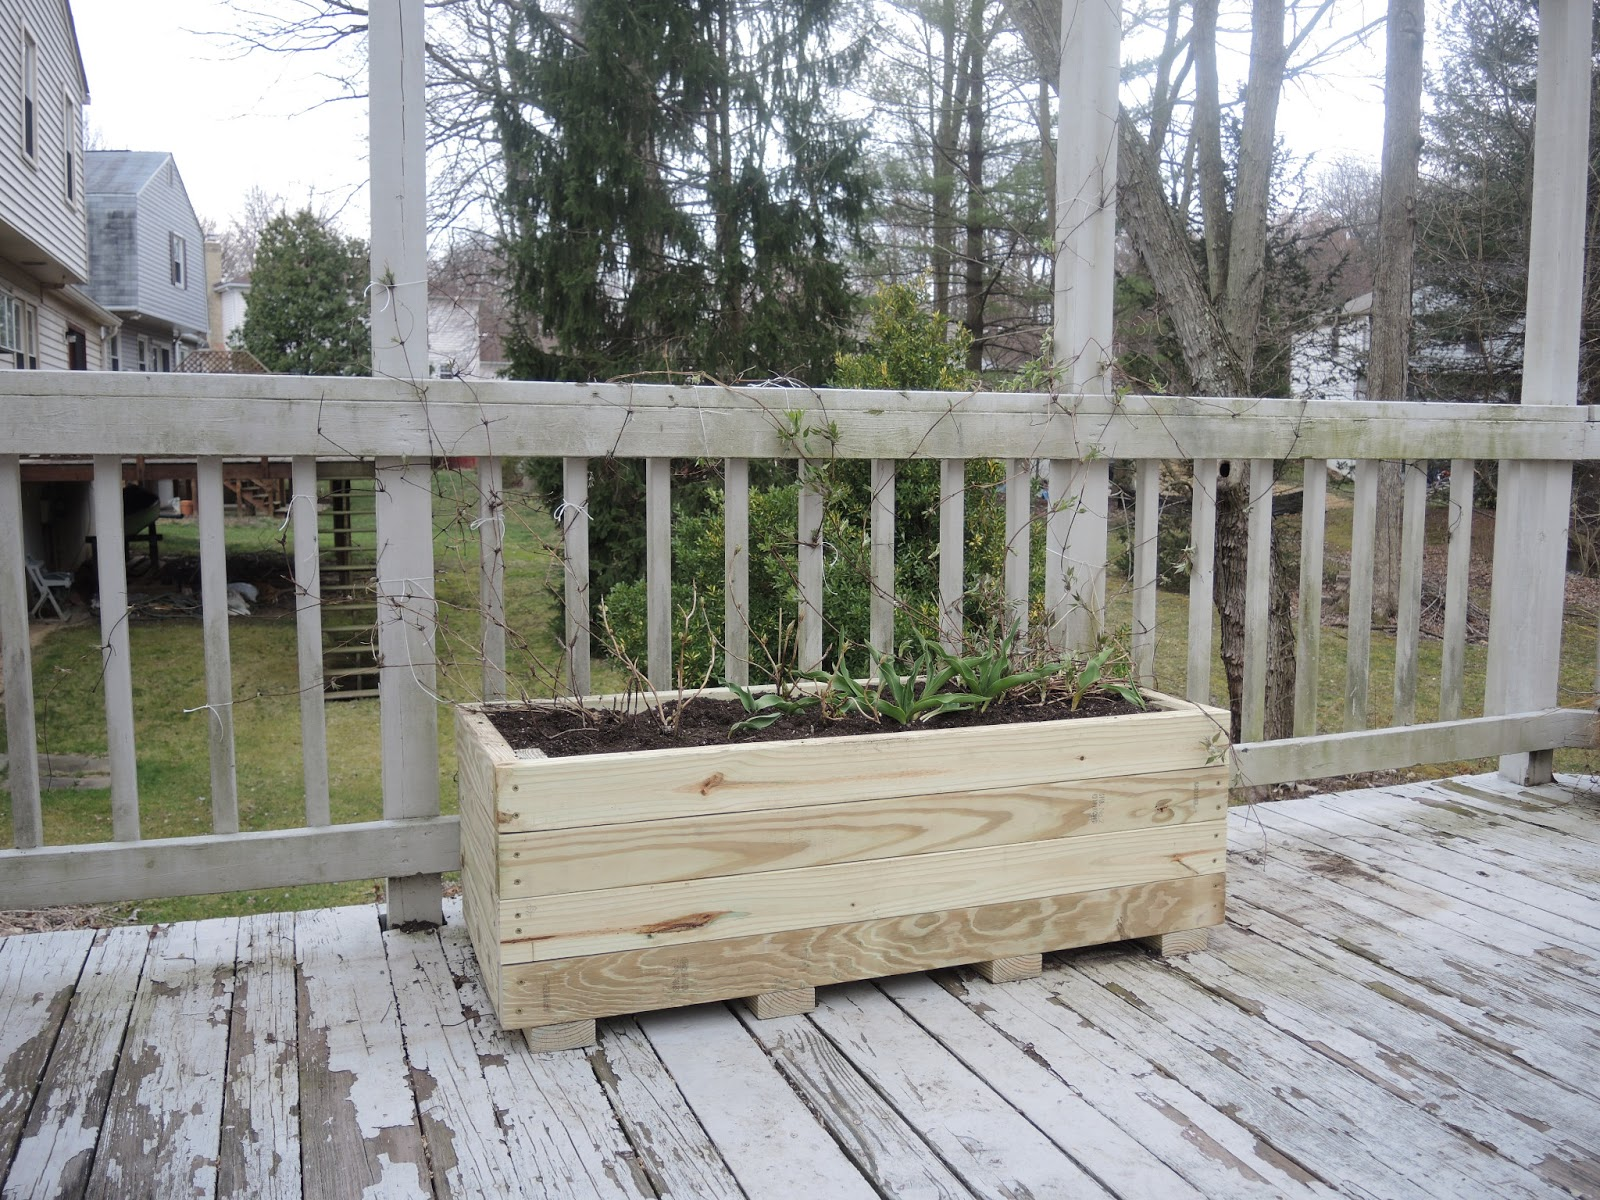 How to build a planter box for a deck - I May Stain The Planter When I Redo The Deck But For Now That S How You Make A Planter Out Of 2x4 S Enjoy